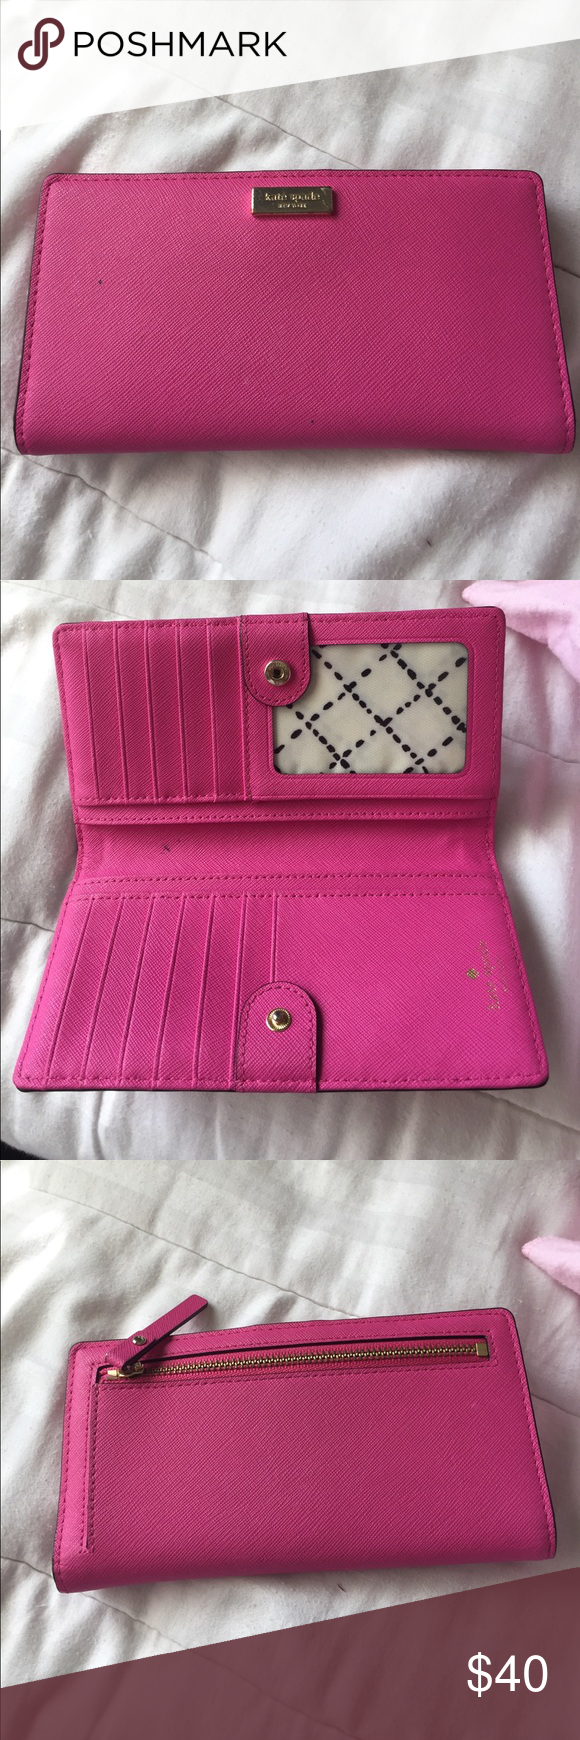 Kate spade pink wallet. Pink wallet, authentic. Some black marks that can be removed. kate spade Bags Wallets